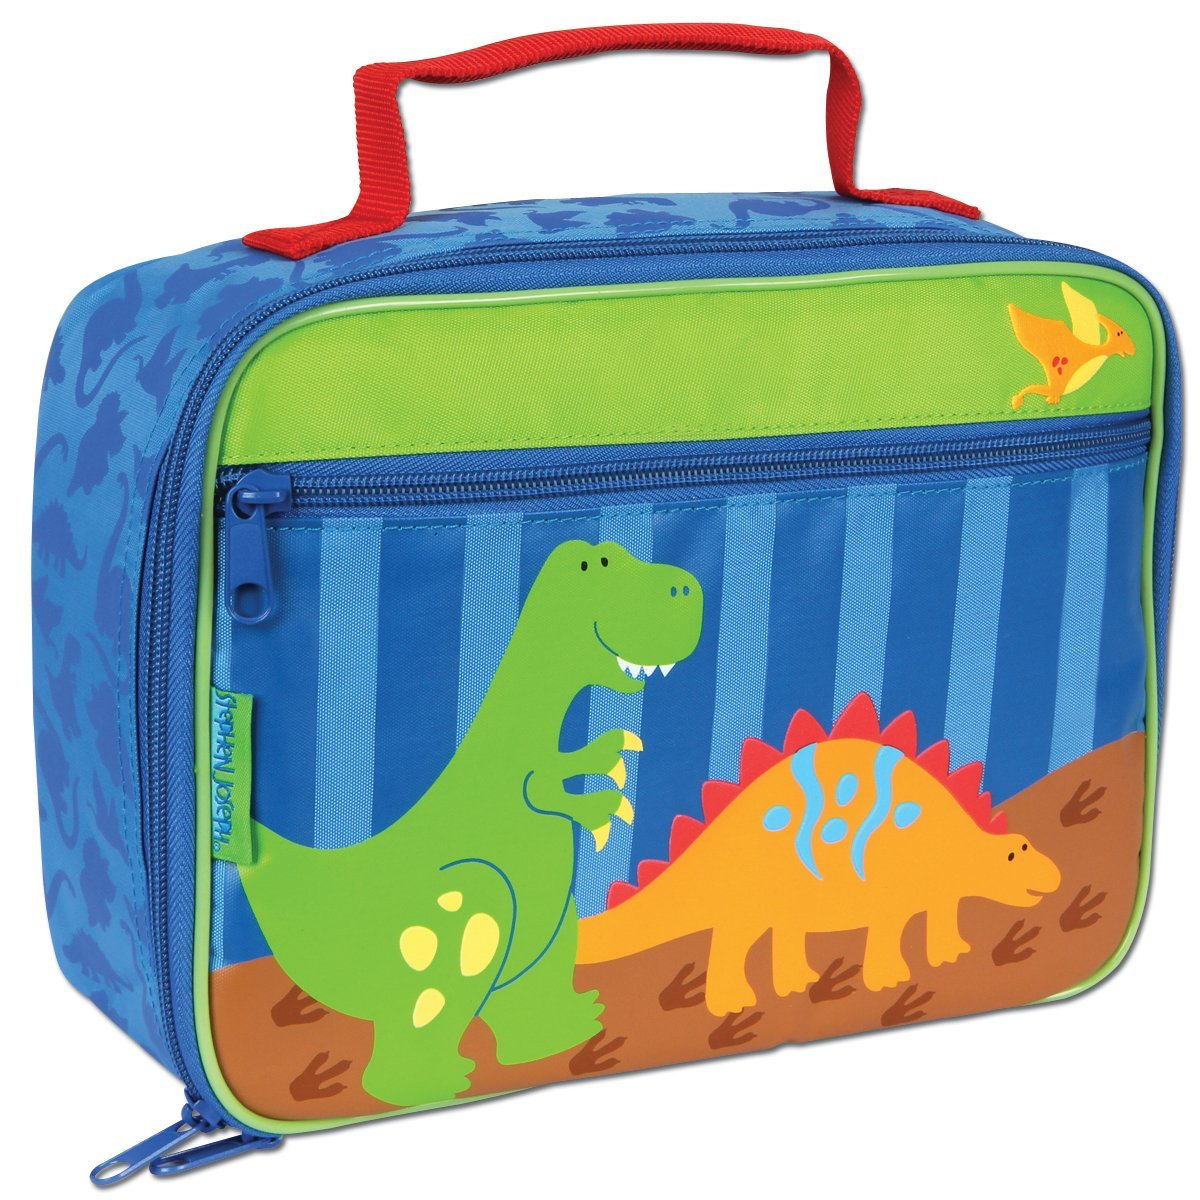 Dinosaur lunchbox, the Earth is only 6,000 years old.